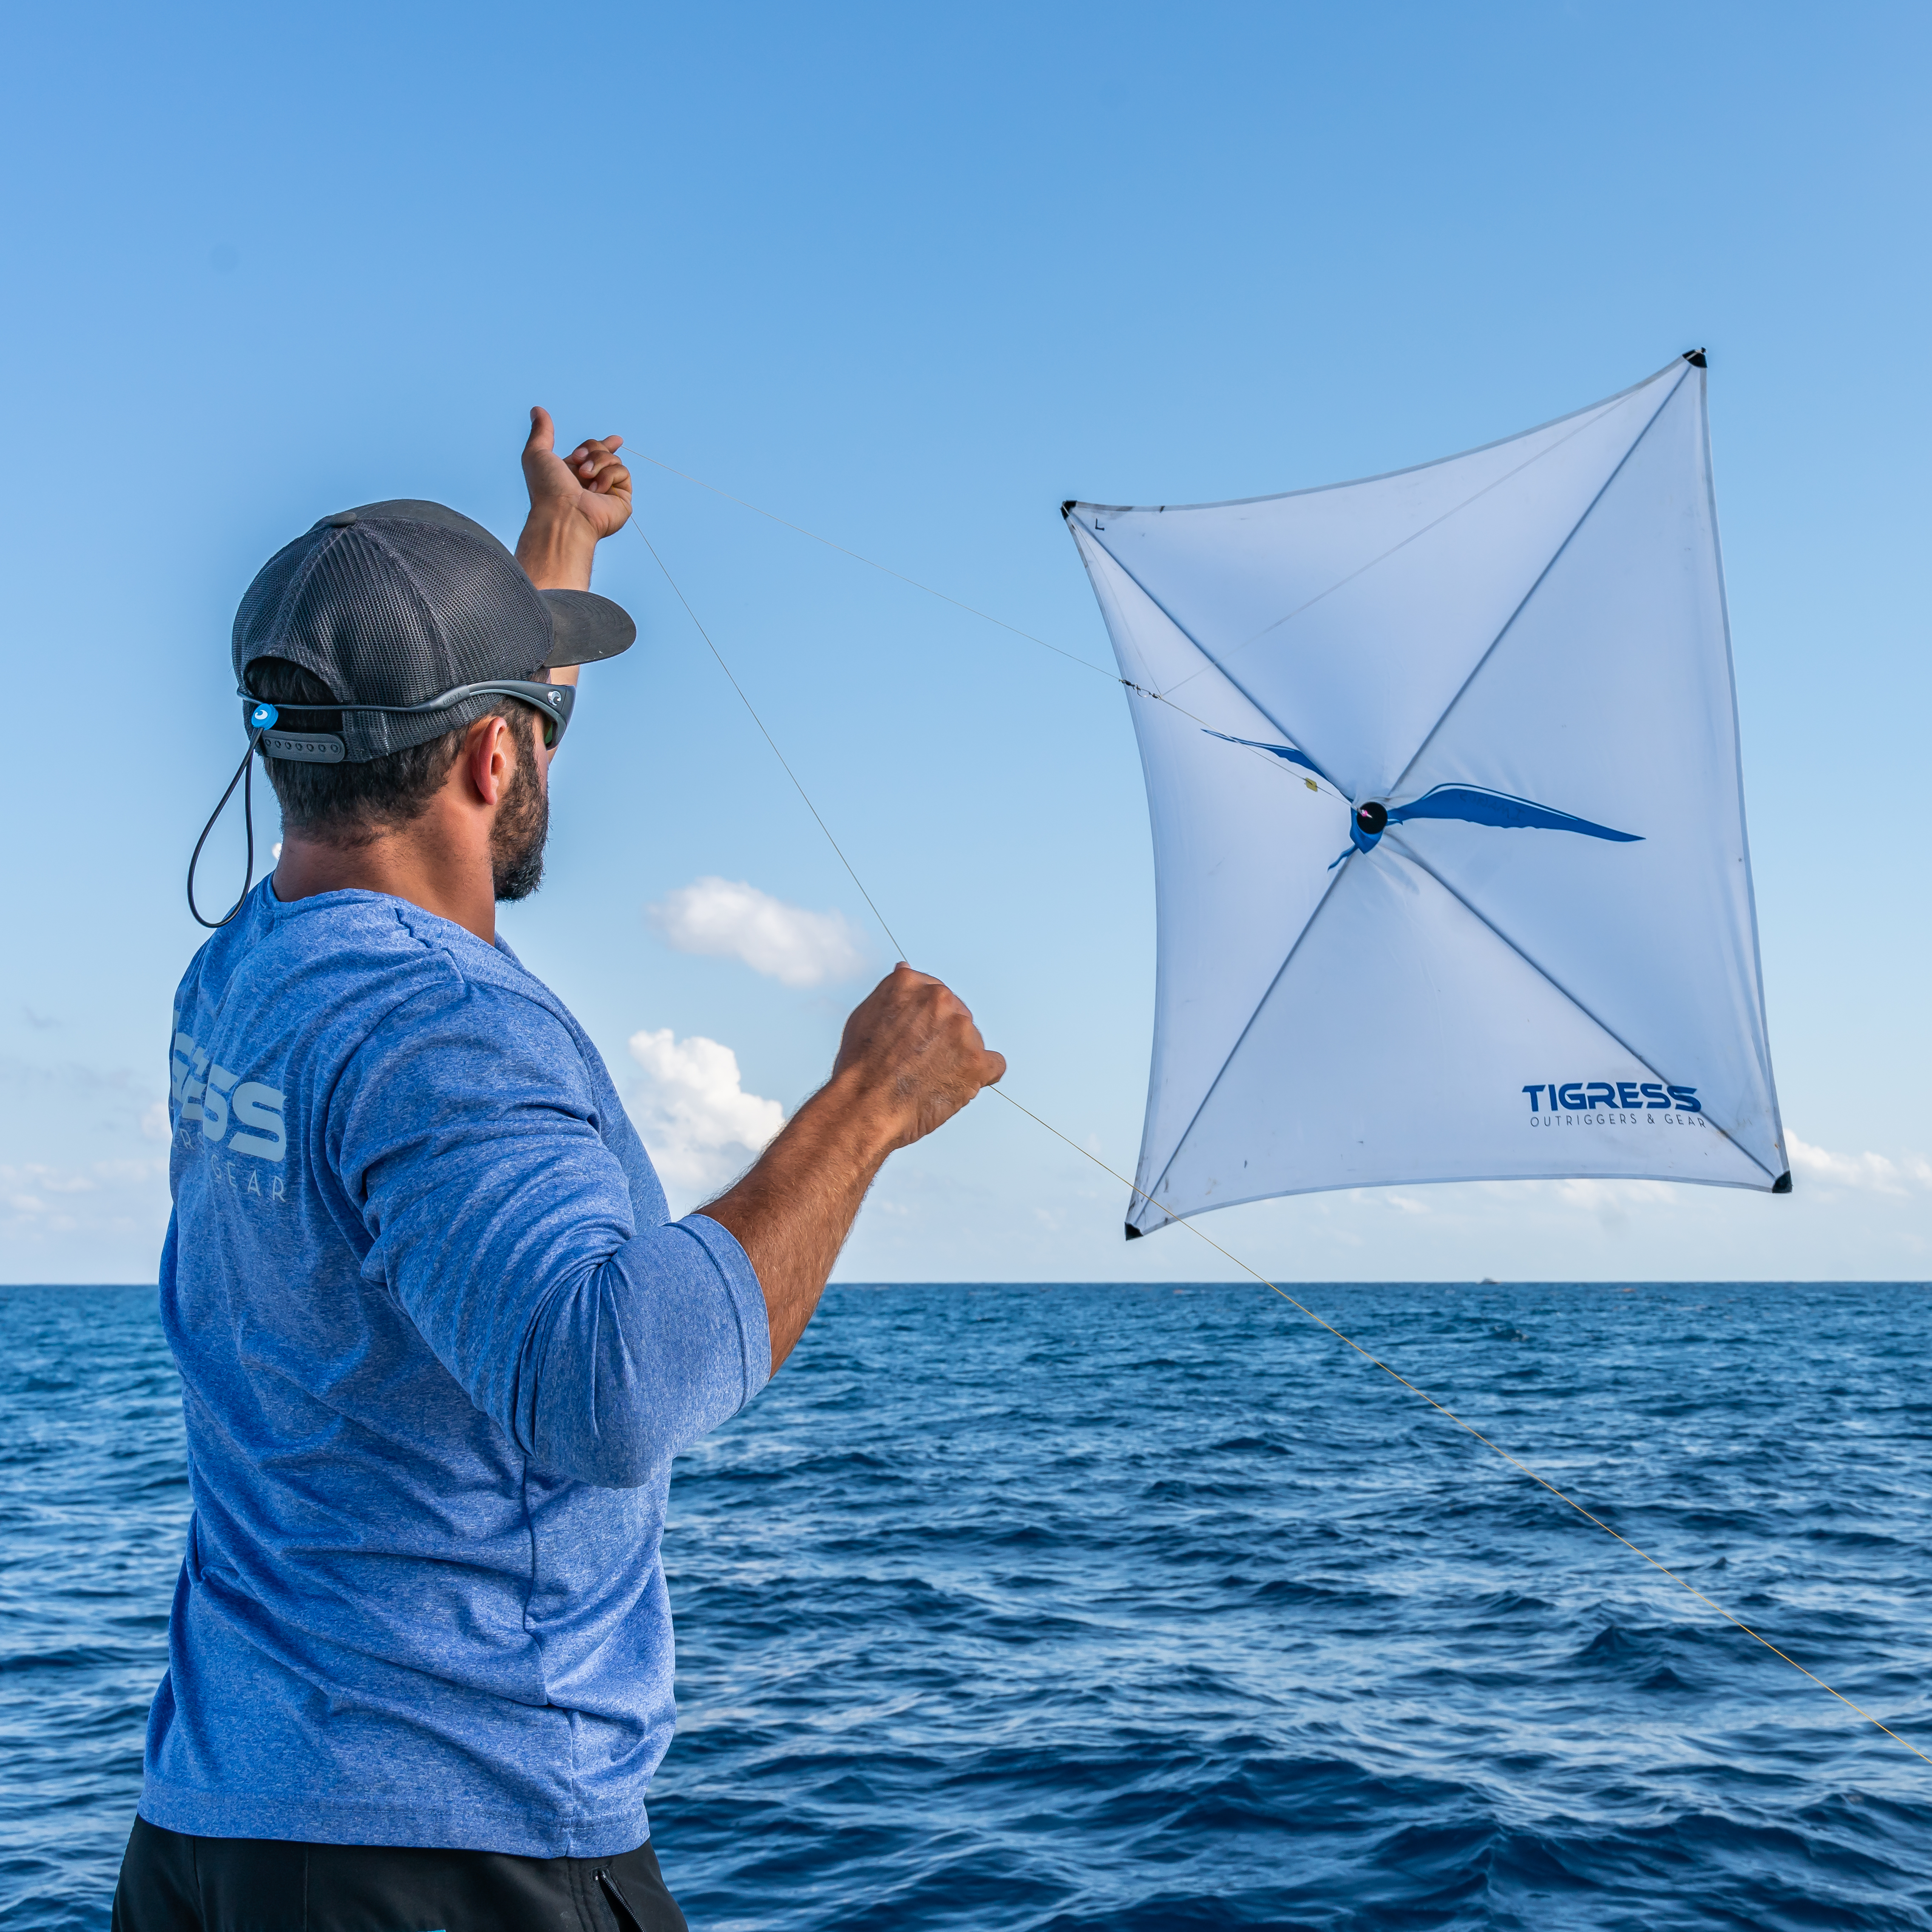 Kite Fishing: Everything You Need to Know